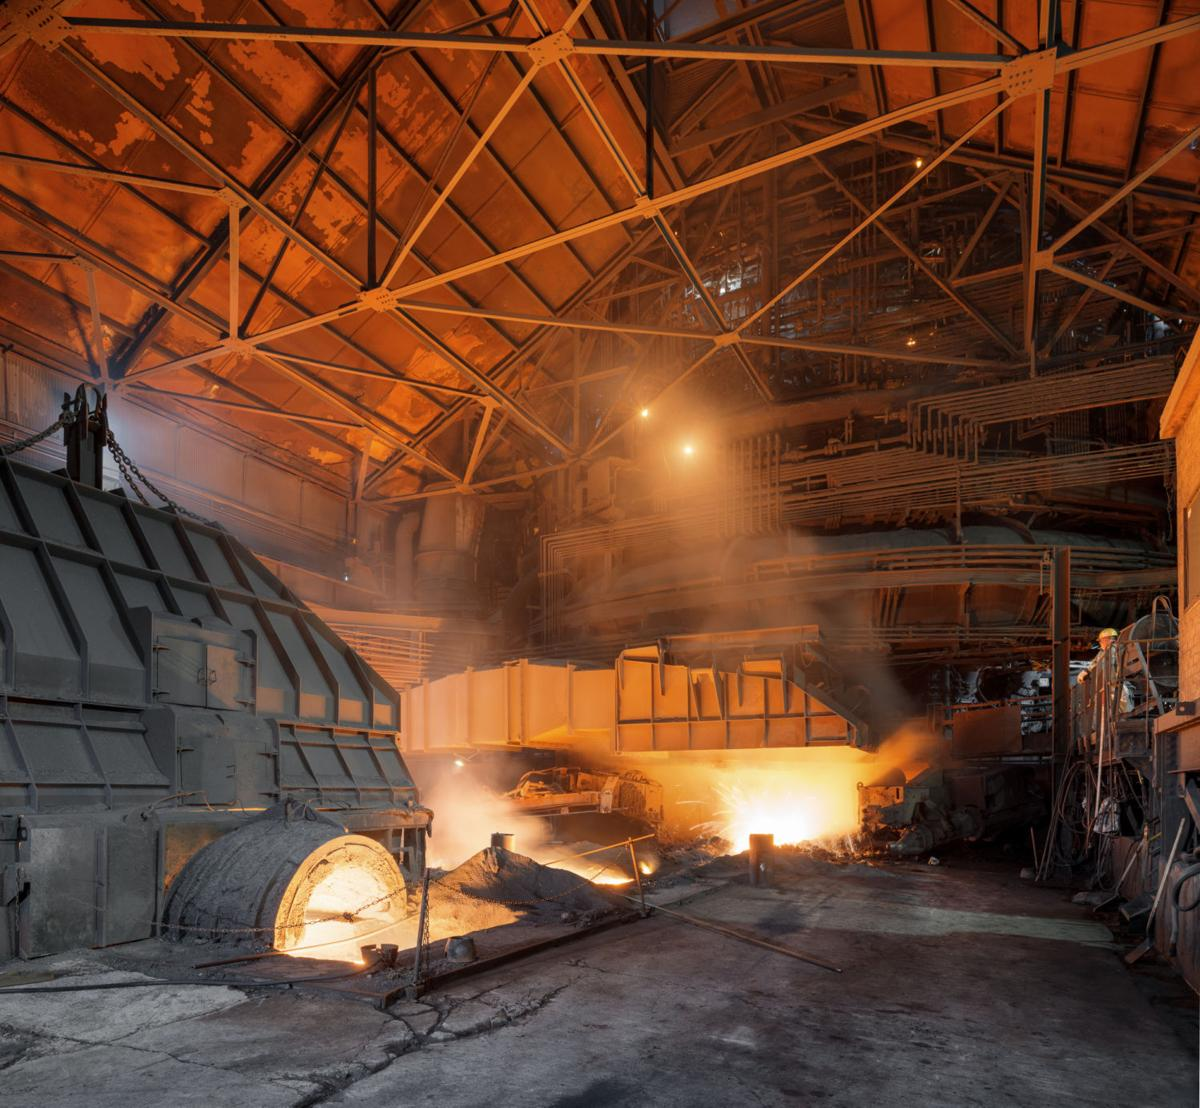 United States remains fourth internationally in steel output